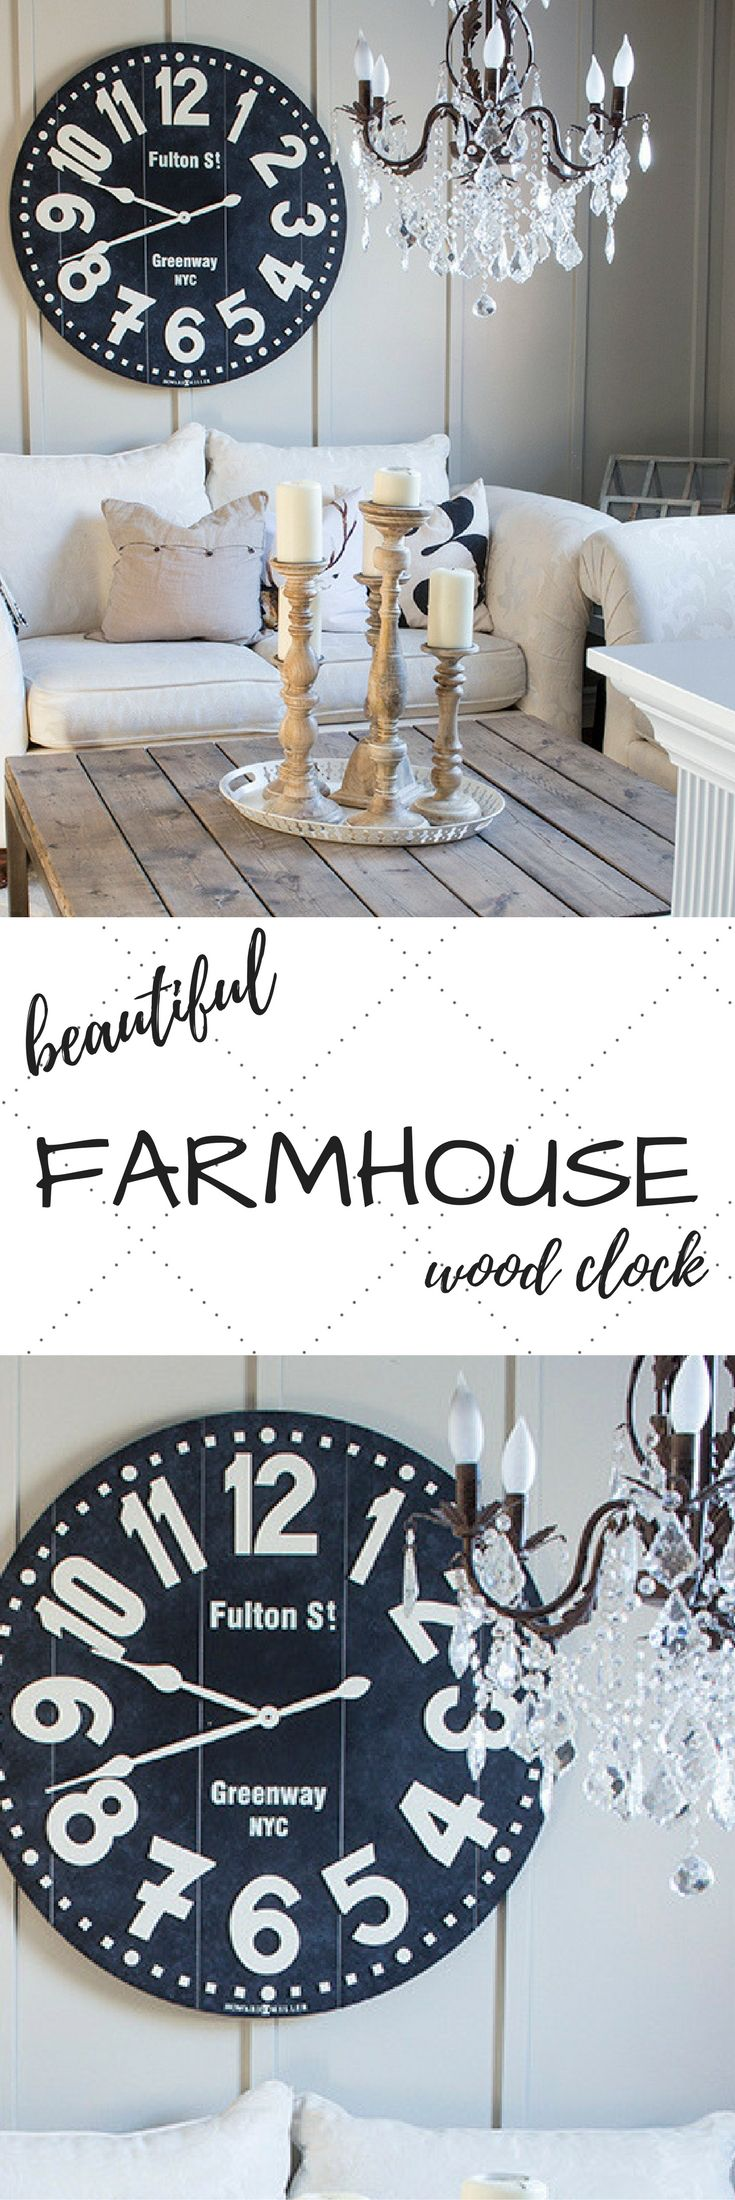 Beautiful wood clock {Bed, Bath & Beyond} ... I've been wanting this gorgeous piece for our living room, and came across this priced best at BBB! I'm so excited to get this up! Love the dark black pallet wood - it makes those big bold white numbers really pop!   || farmhouse decor, round clock, pallet wood clock, large clock, farmhouse style, farmhouse living room, farmhouse dining room, farmhouse kitchen, farmhouse bedroom, clocks diy, diy clocks, rustic home decor, rustic kitchen ||